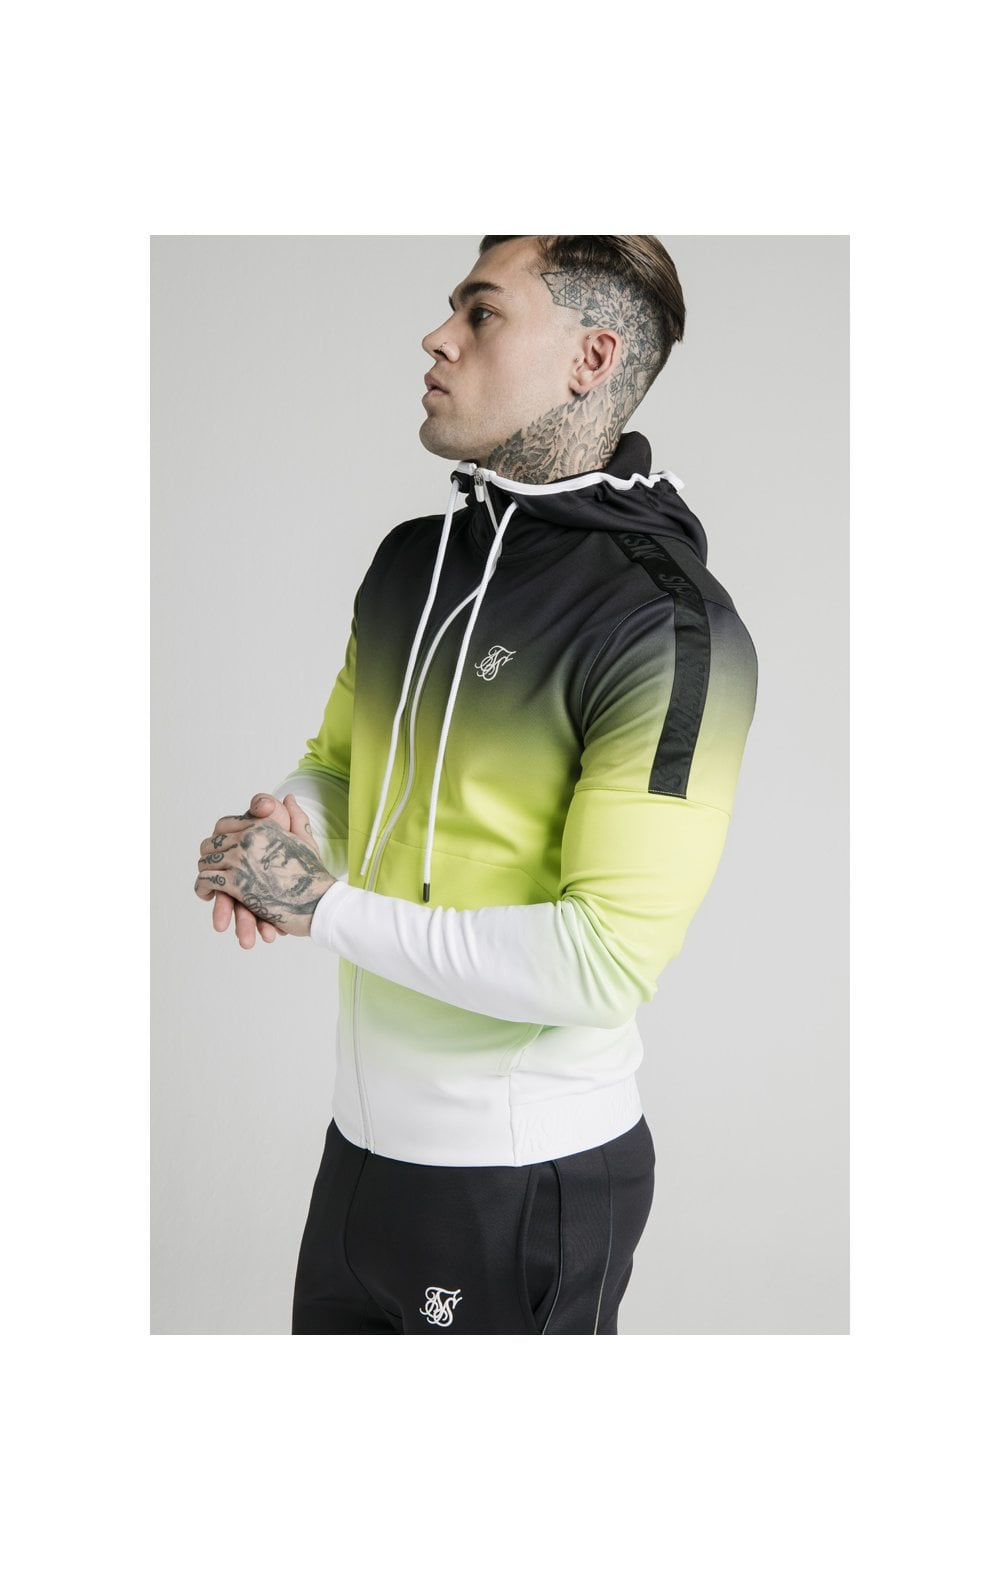 SikSilk Tri-Fade Agility Zip Through Hoodie - Black, Fluro & White (1)